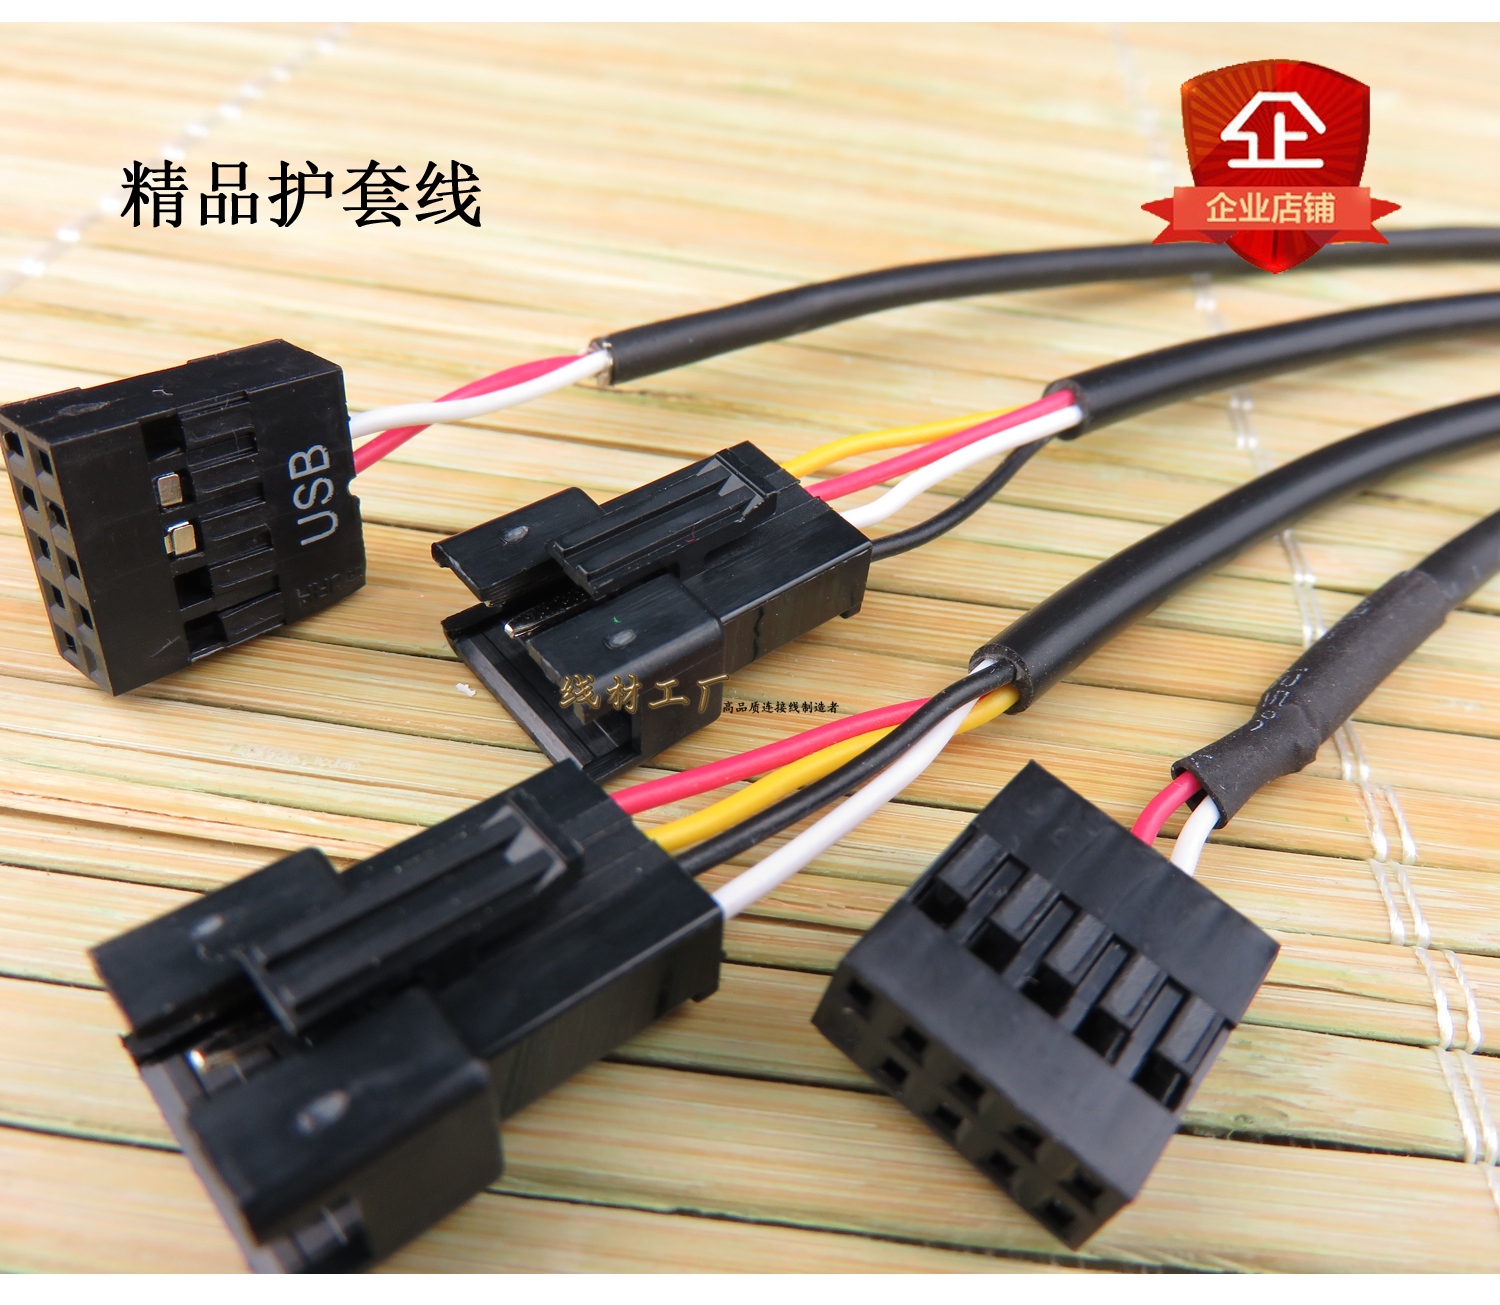 Categorywire Wire Classproductnamerj11 Crystal Head An Pukang 4 Pin Harness Sheathed Custom Made Terminal Line Xh254 Ph Sm Ch 20 396